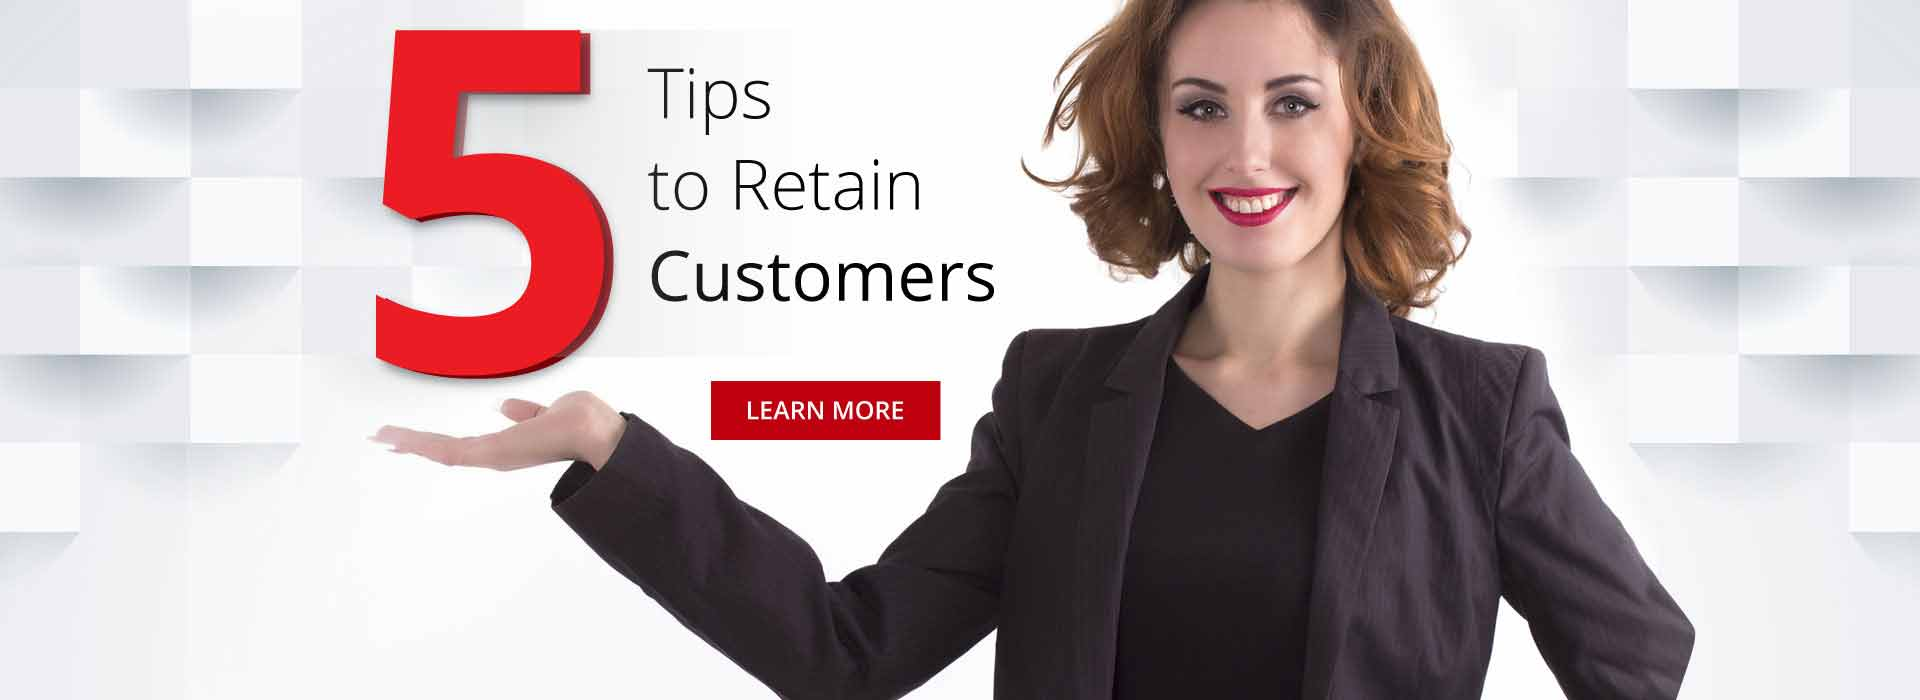 Five Tips to Retain Customers